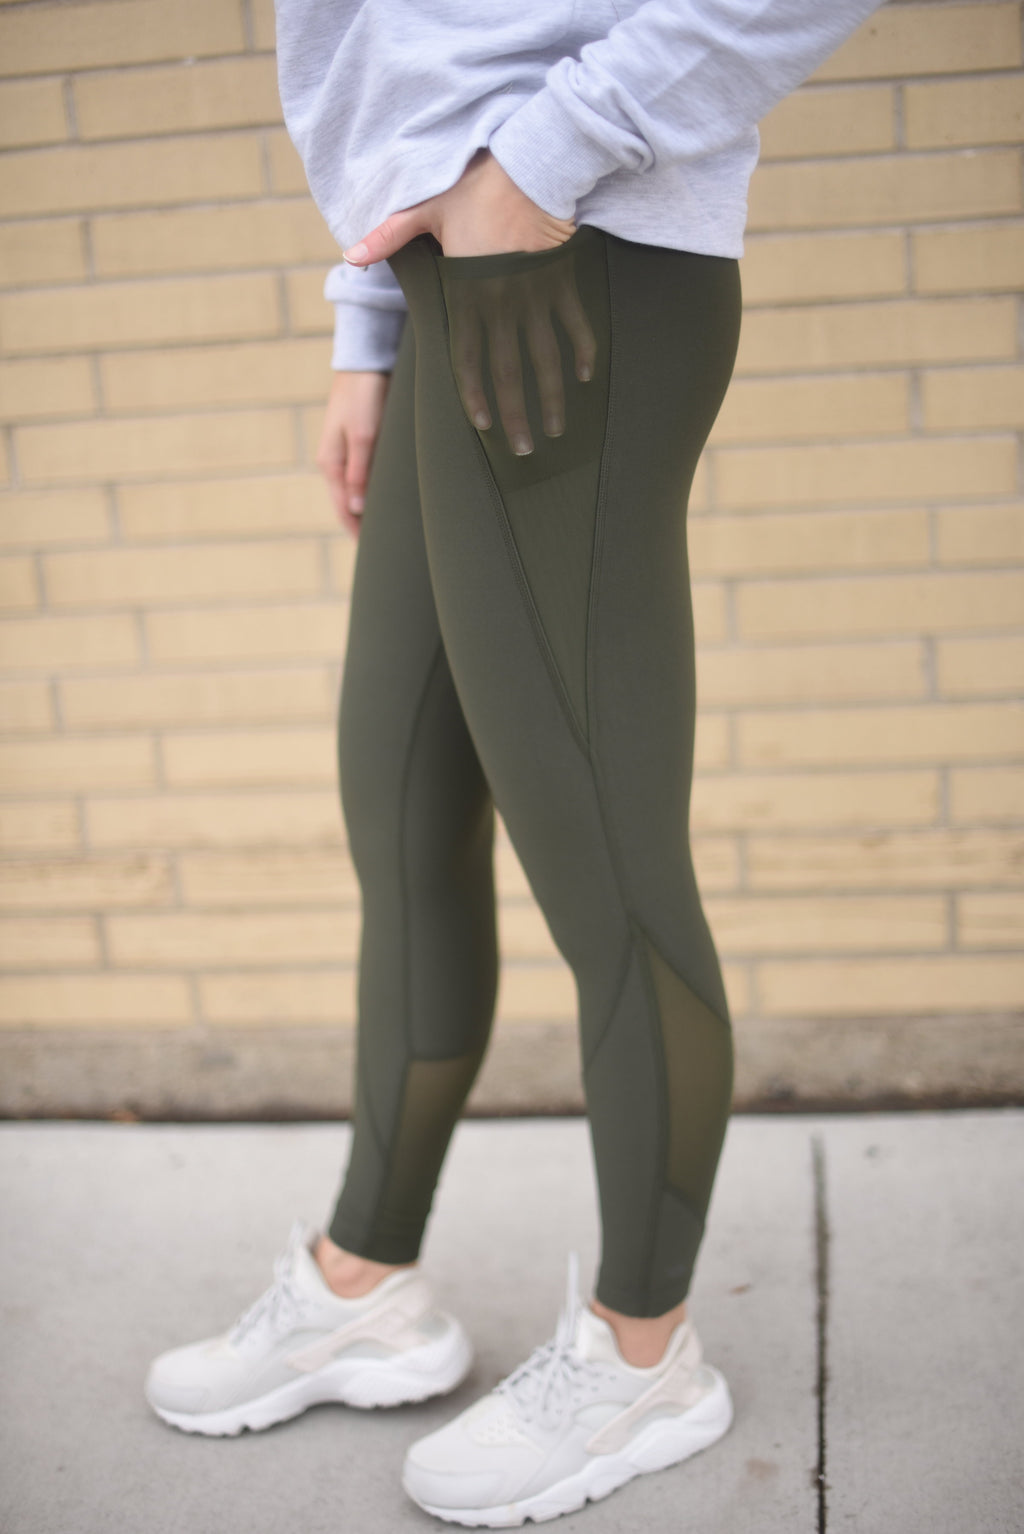 Coach Leaf Leggings